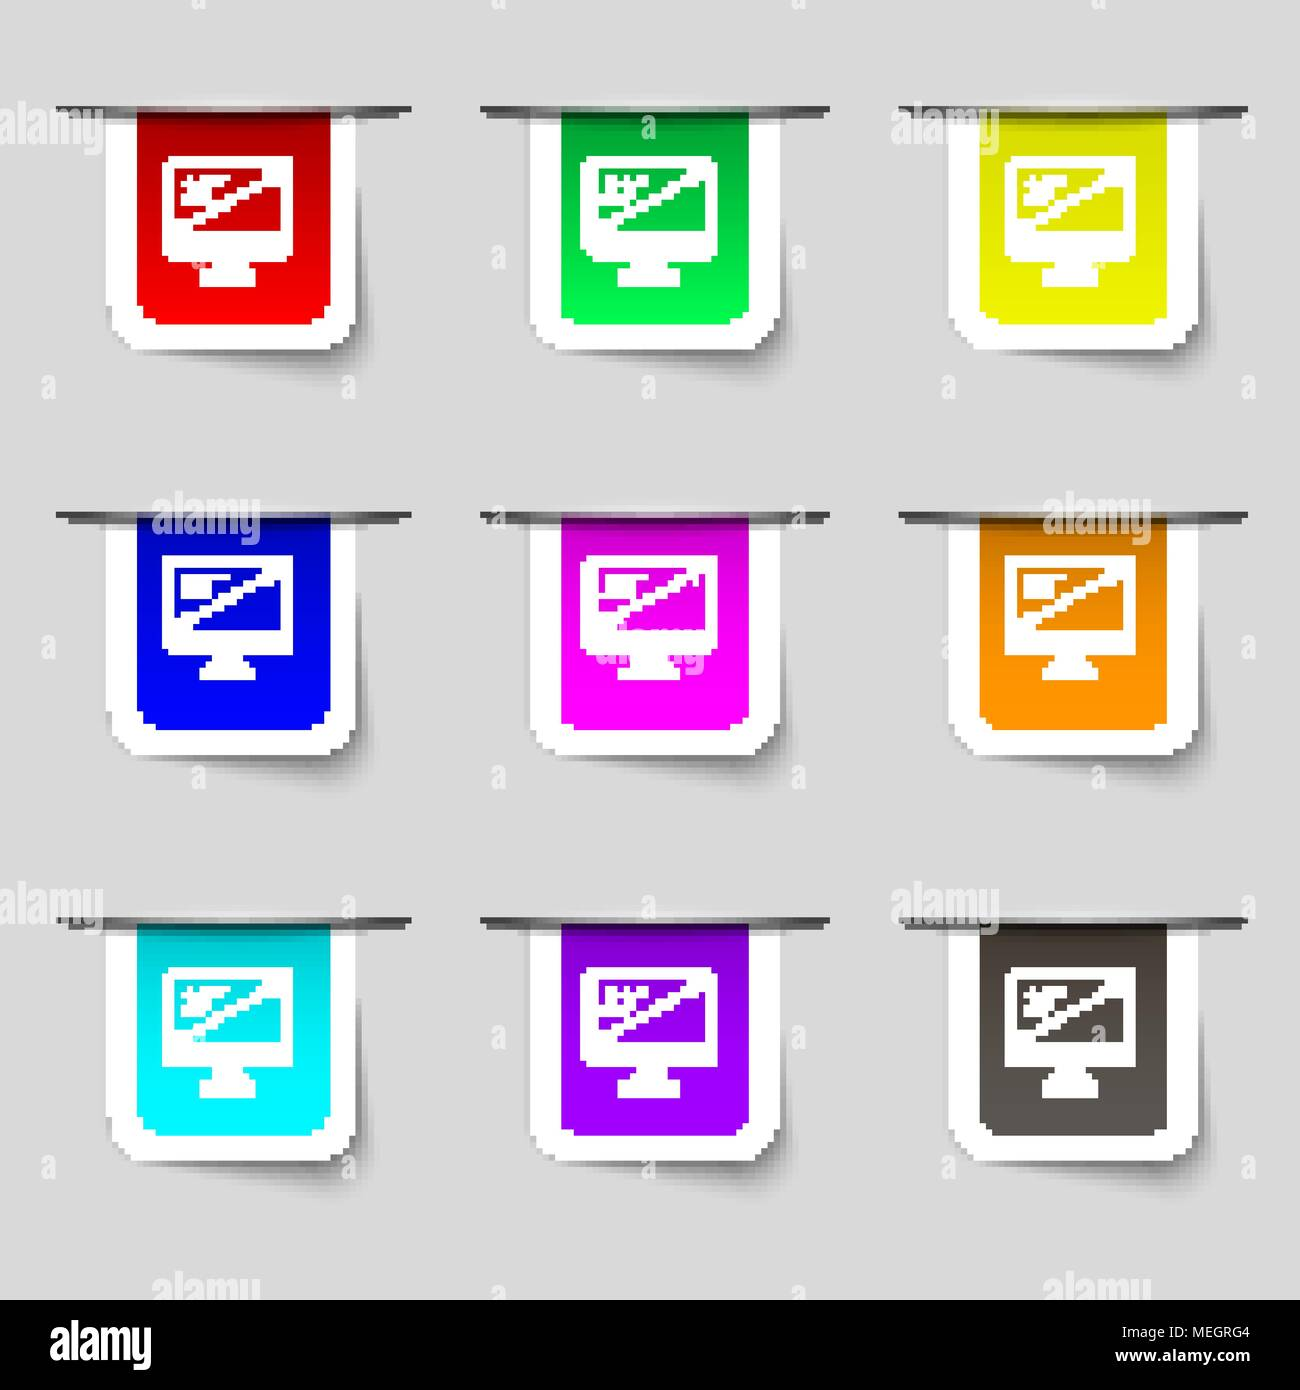 diagonal of the monitor 23 inches icon sign. Set of multicolored modern labels for your design. Vector illustration - Stock Vector